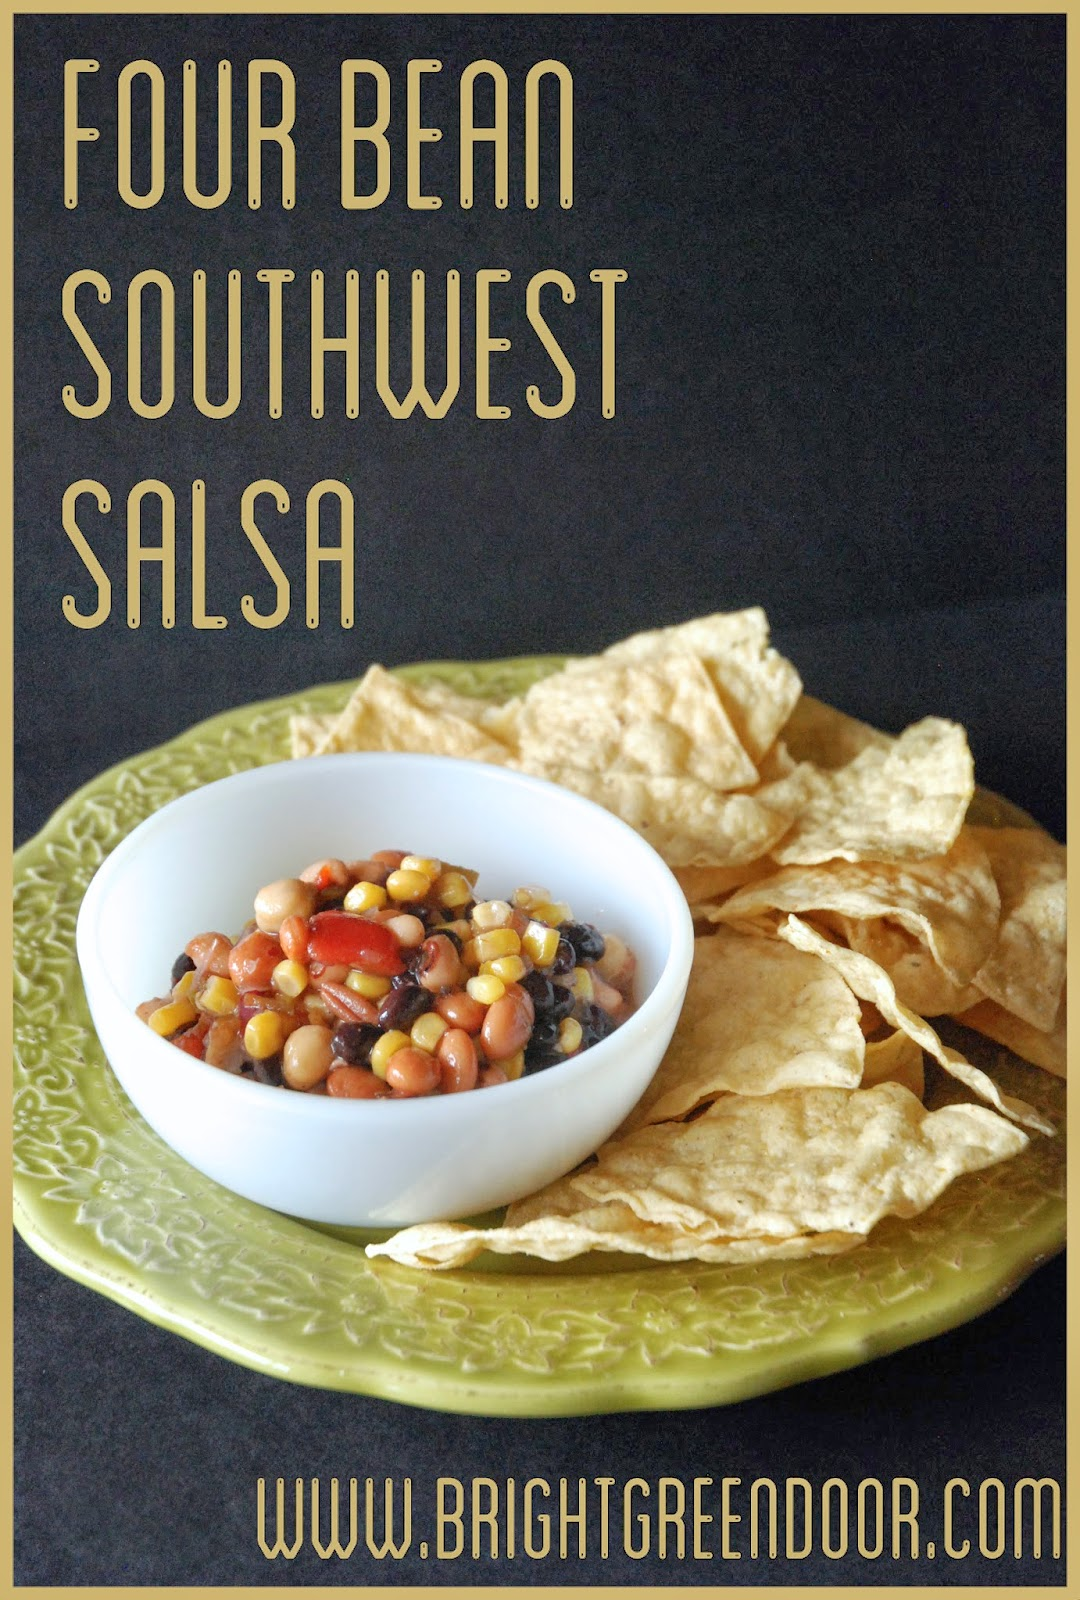 Four Bean Southwest Salsa